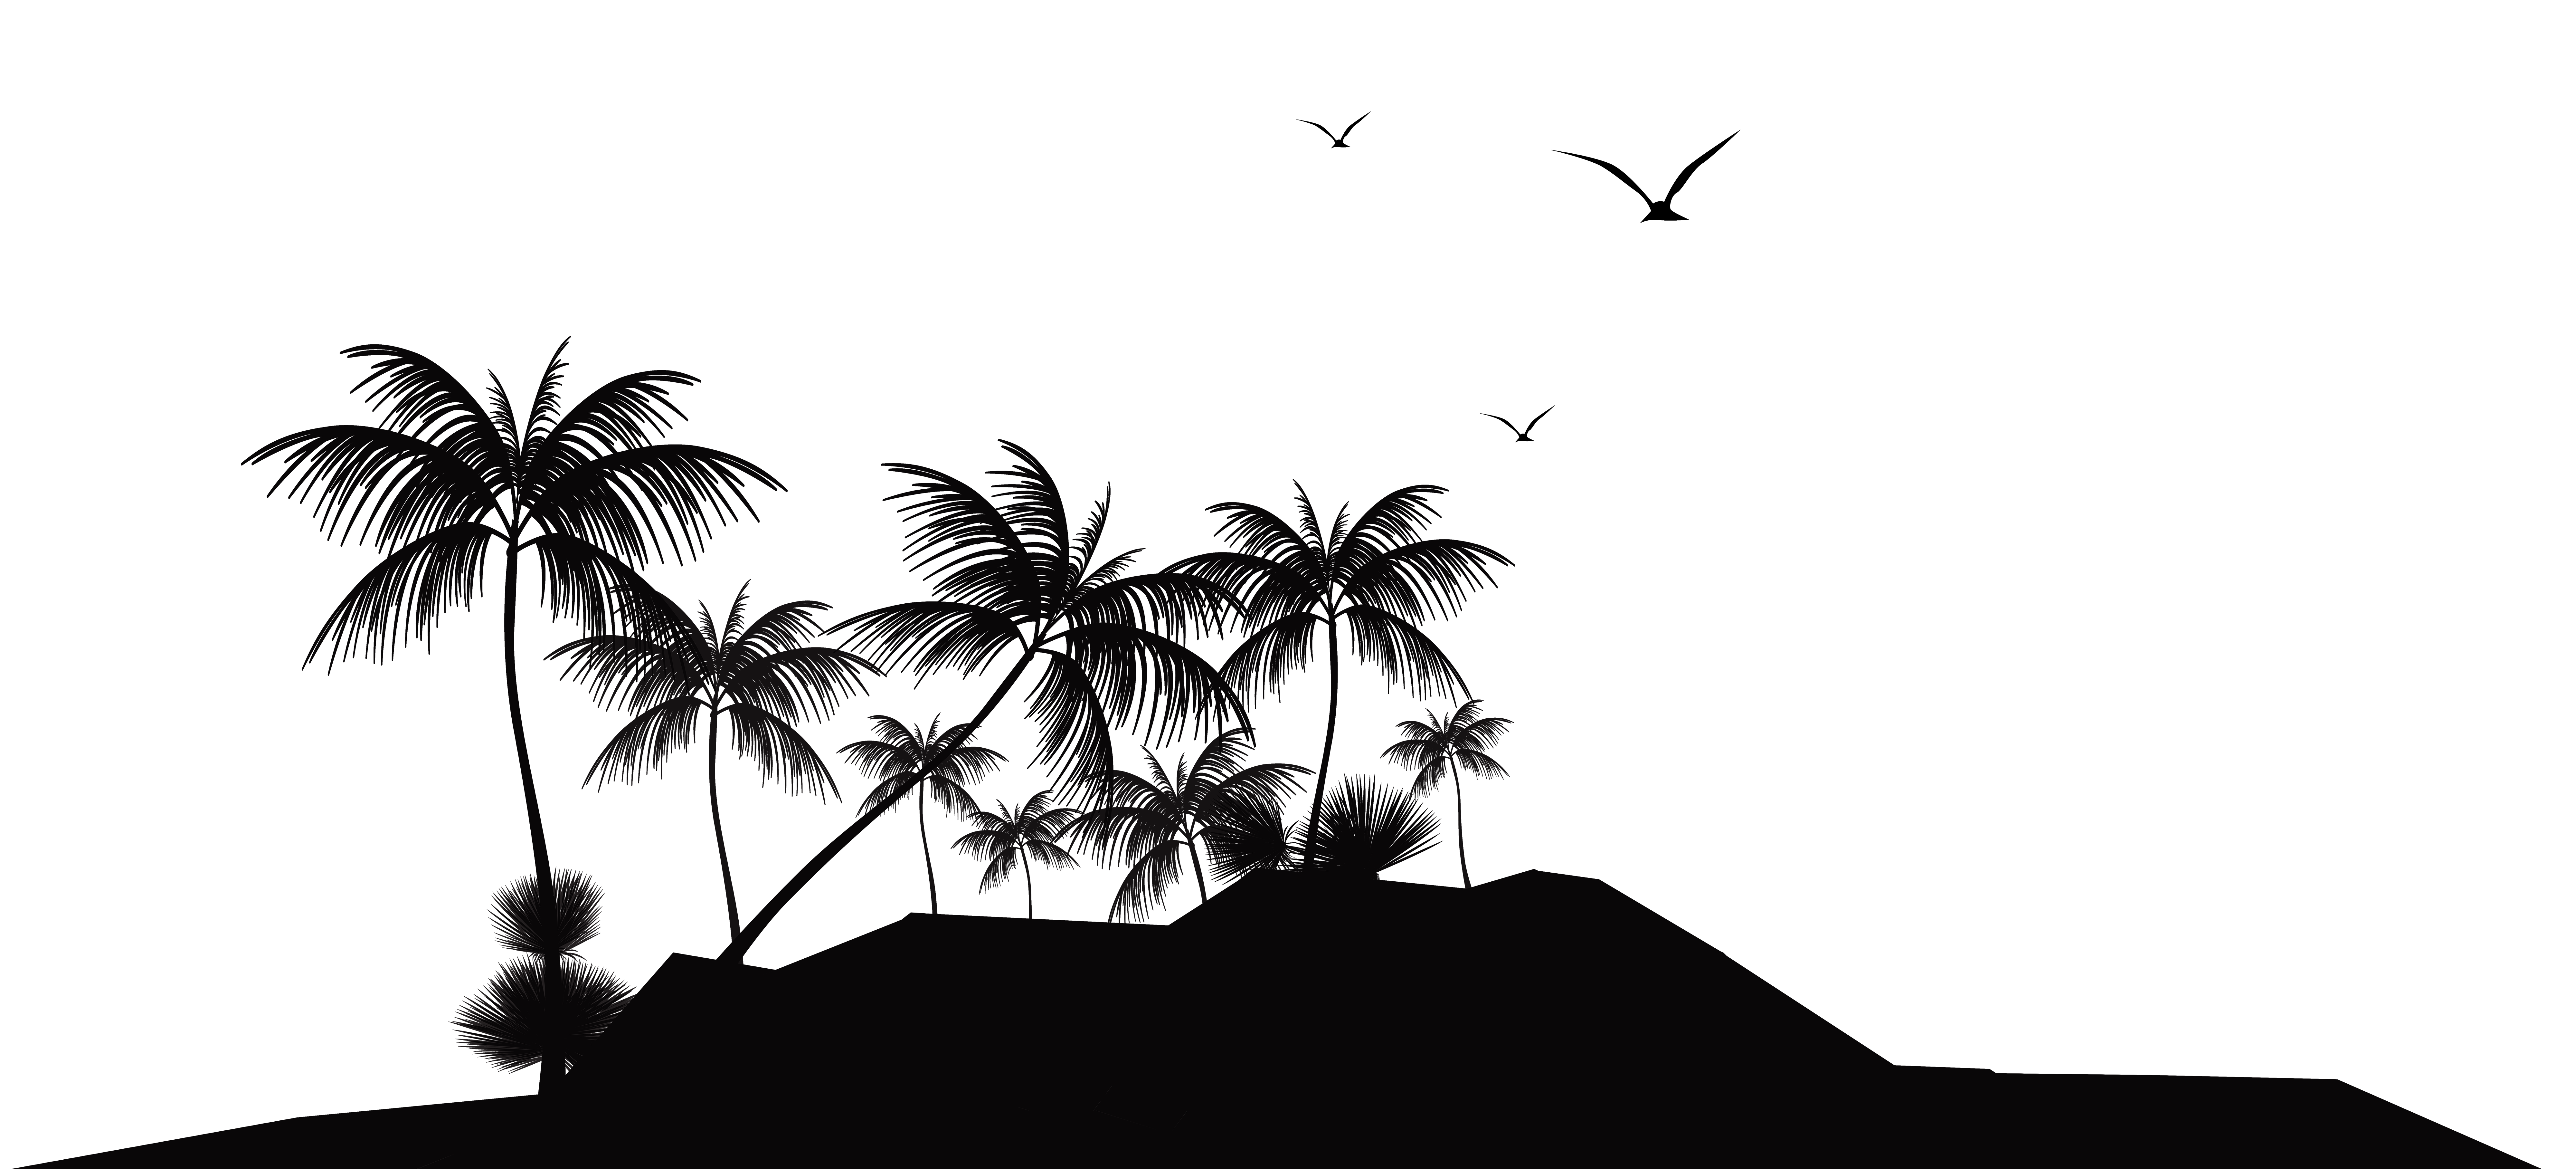 Tropical clipart black and white #14